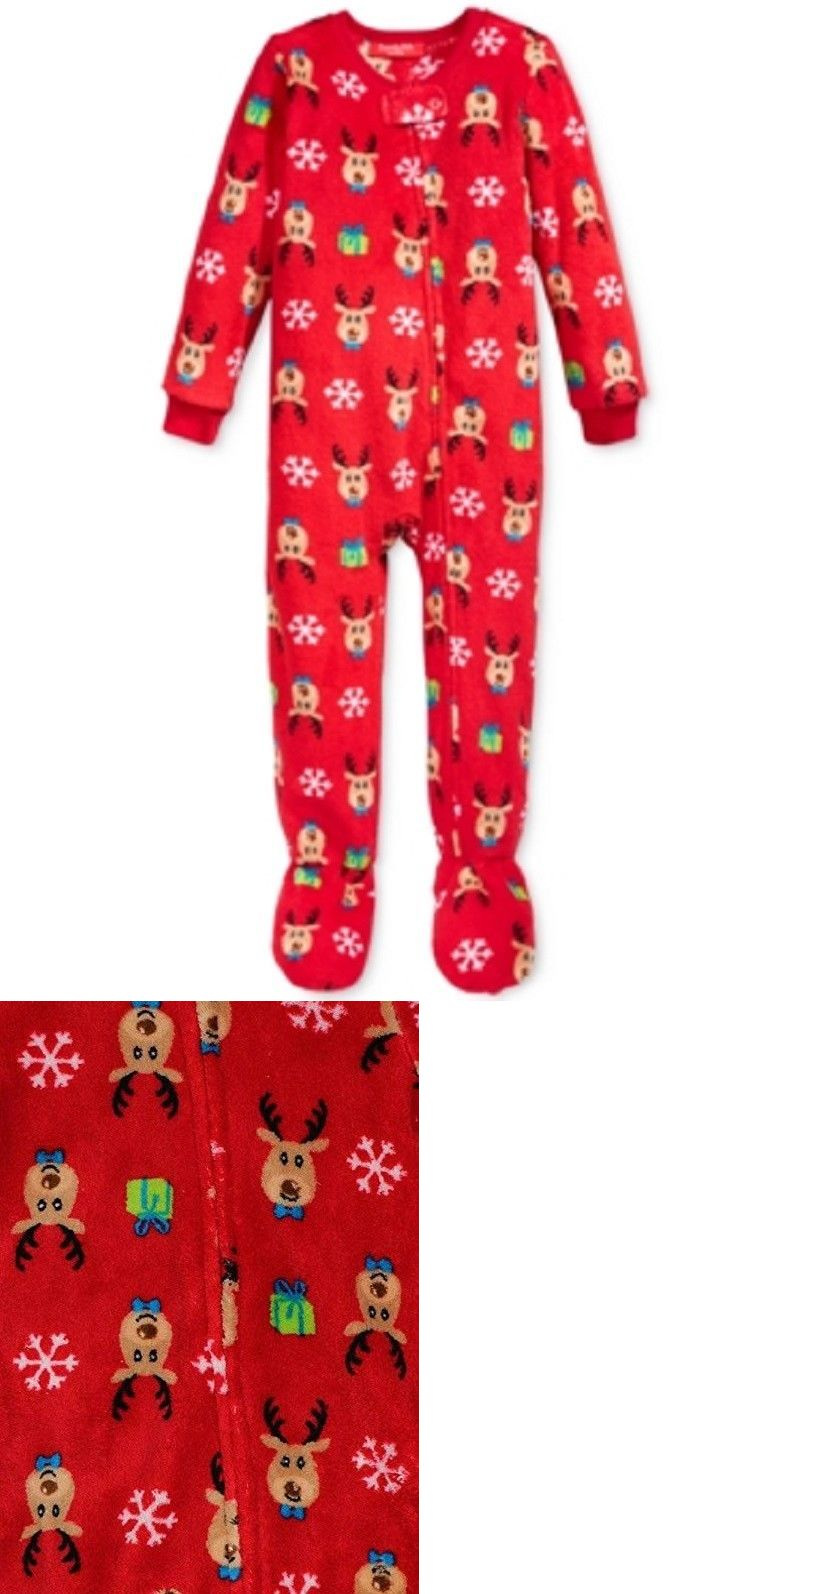 2ac5dad99 Sleepwear 163400  Family Pajamas Unisex Baby Boys Or Girls Christmas ...